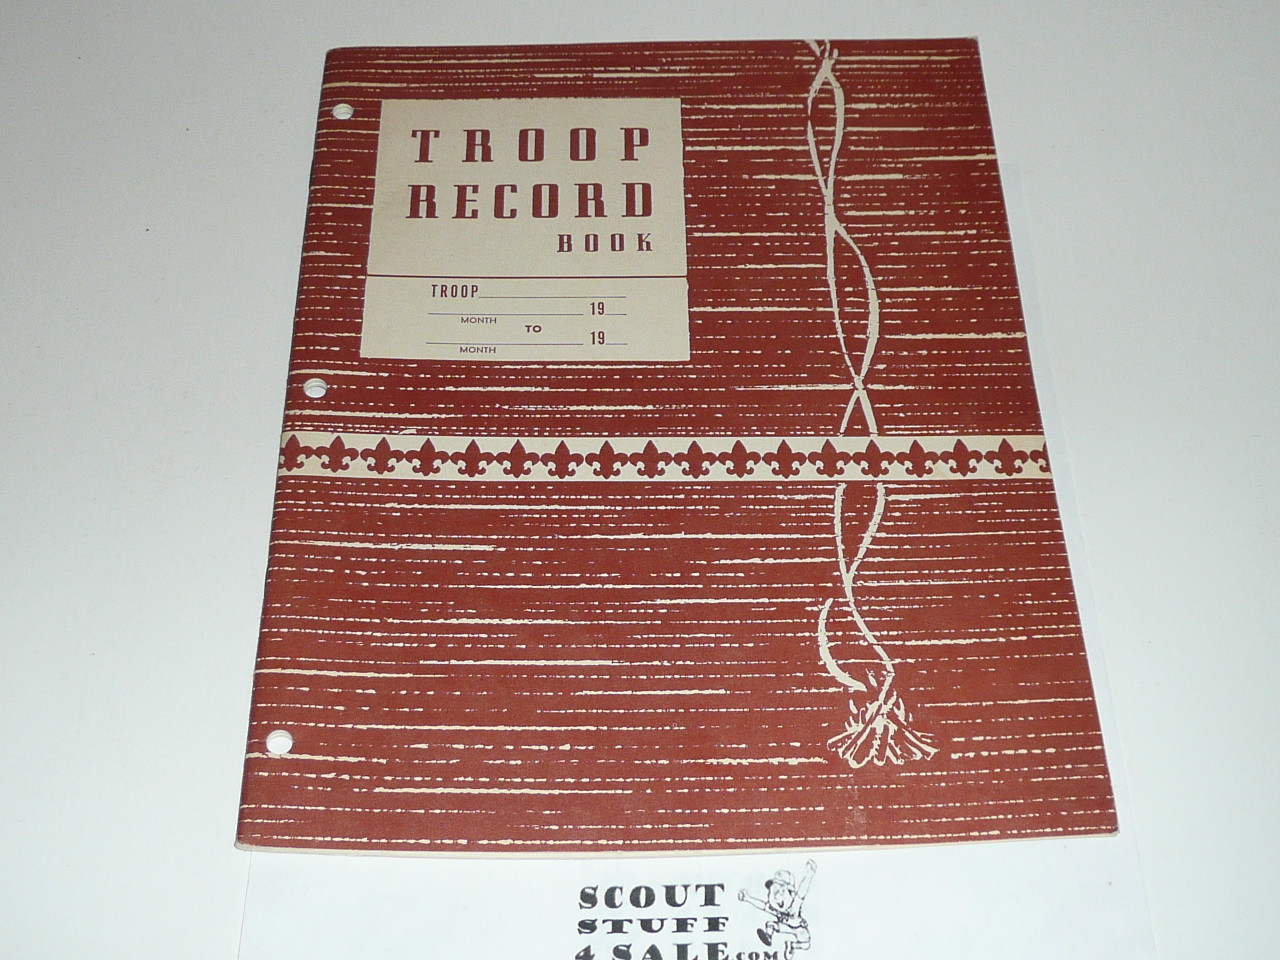 1964 Troop Record Book, Boy Scouts of America, 3-64 Printing